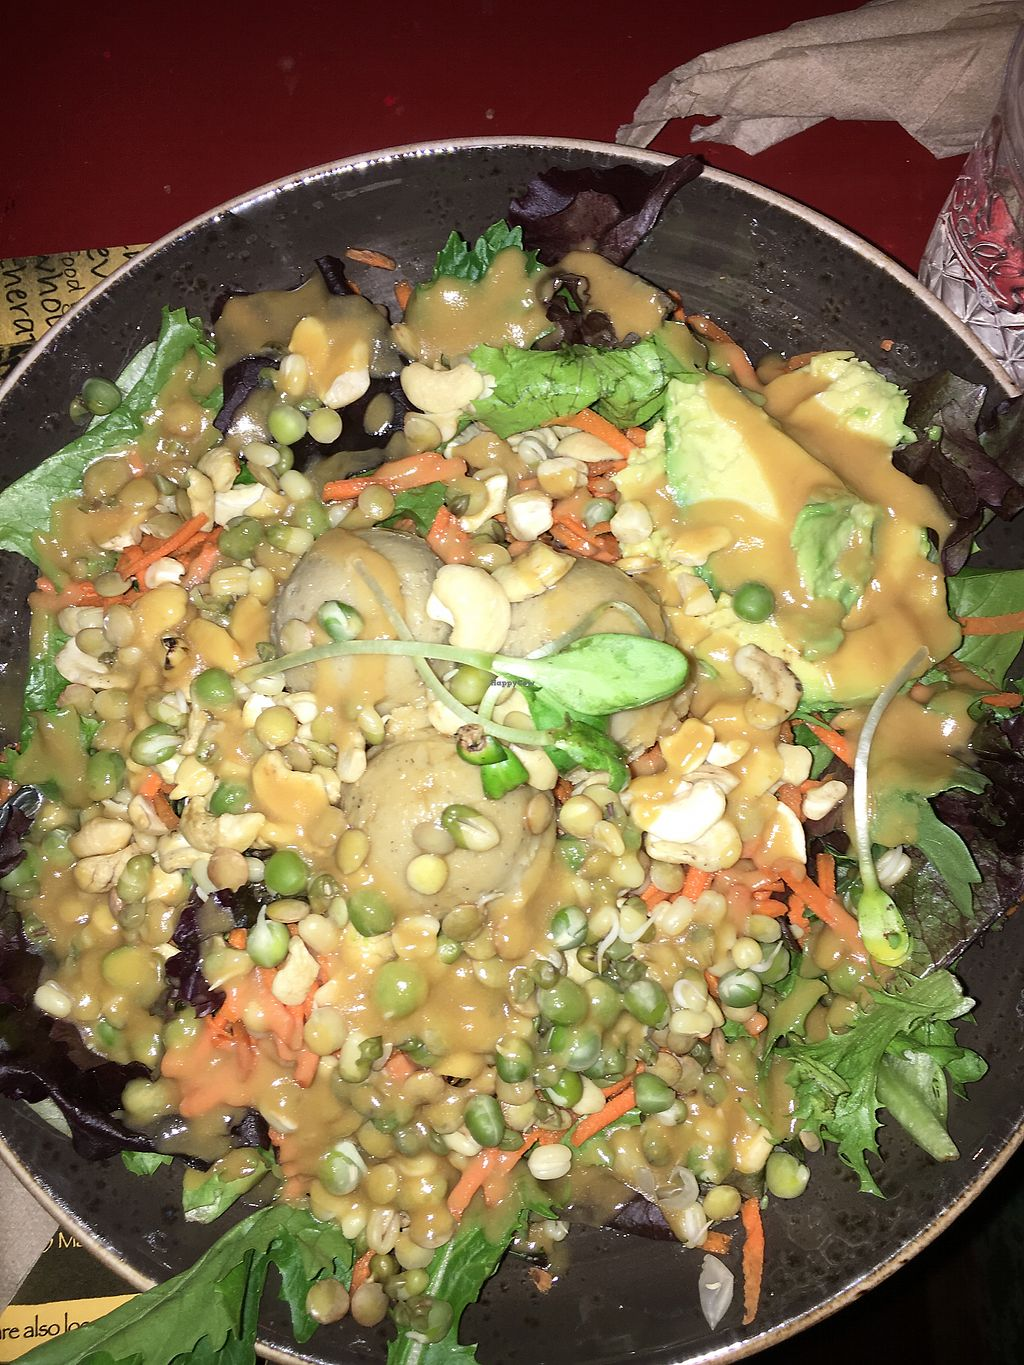 "Photo of Life Alive Organic Cafe  by <a href=""/members/profile/daroff"">daroff</a> <br/>Warrior Salad Bowl (w/sprouted legumes and avocado) <br/> October 5, 2017  - <a href='/contact/abuse/image/26051/311898'>Report</a>"